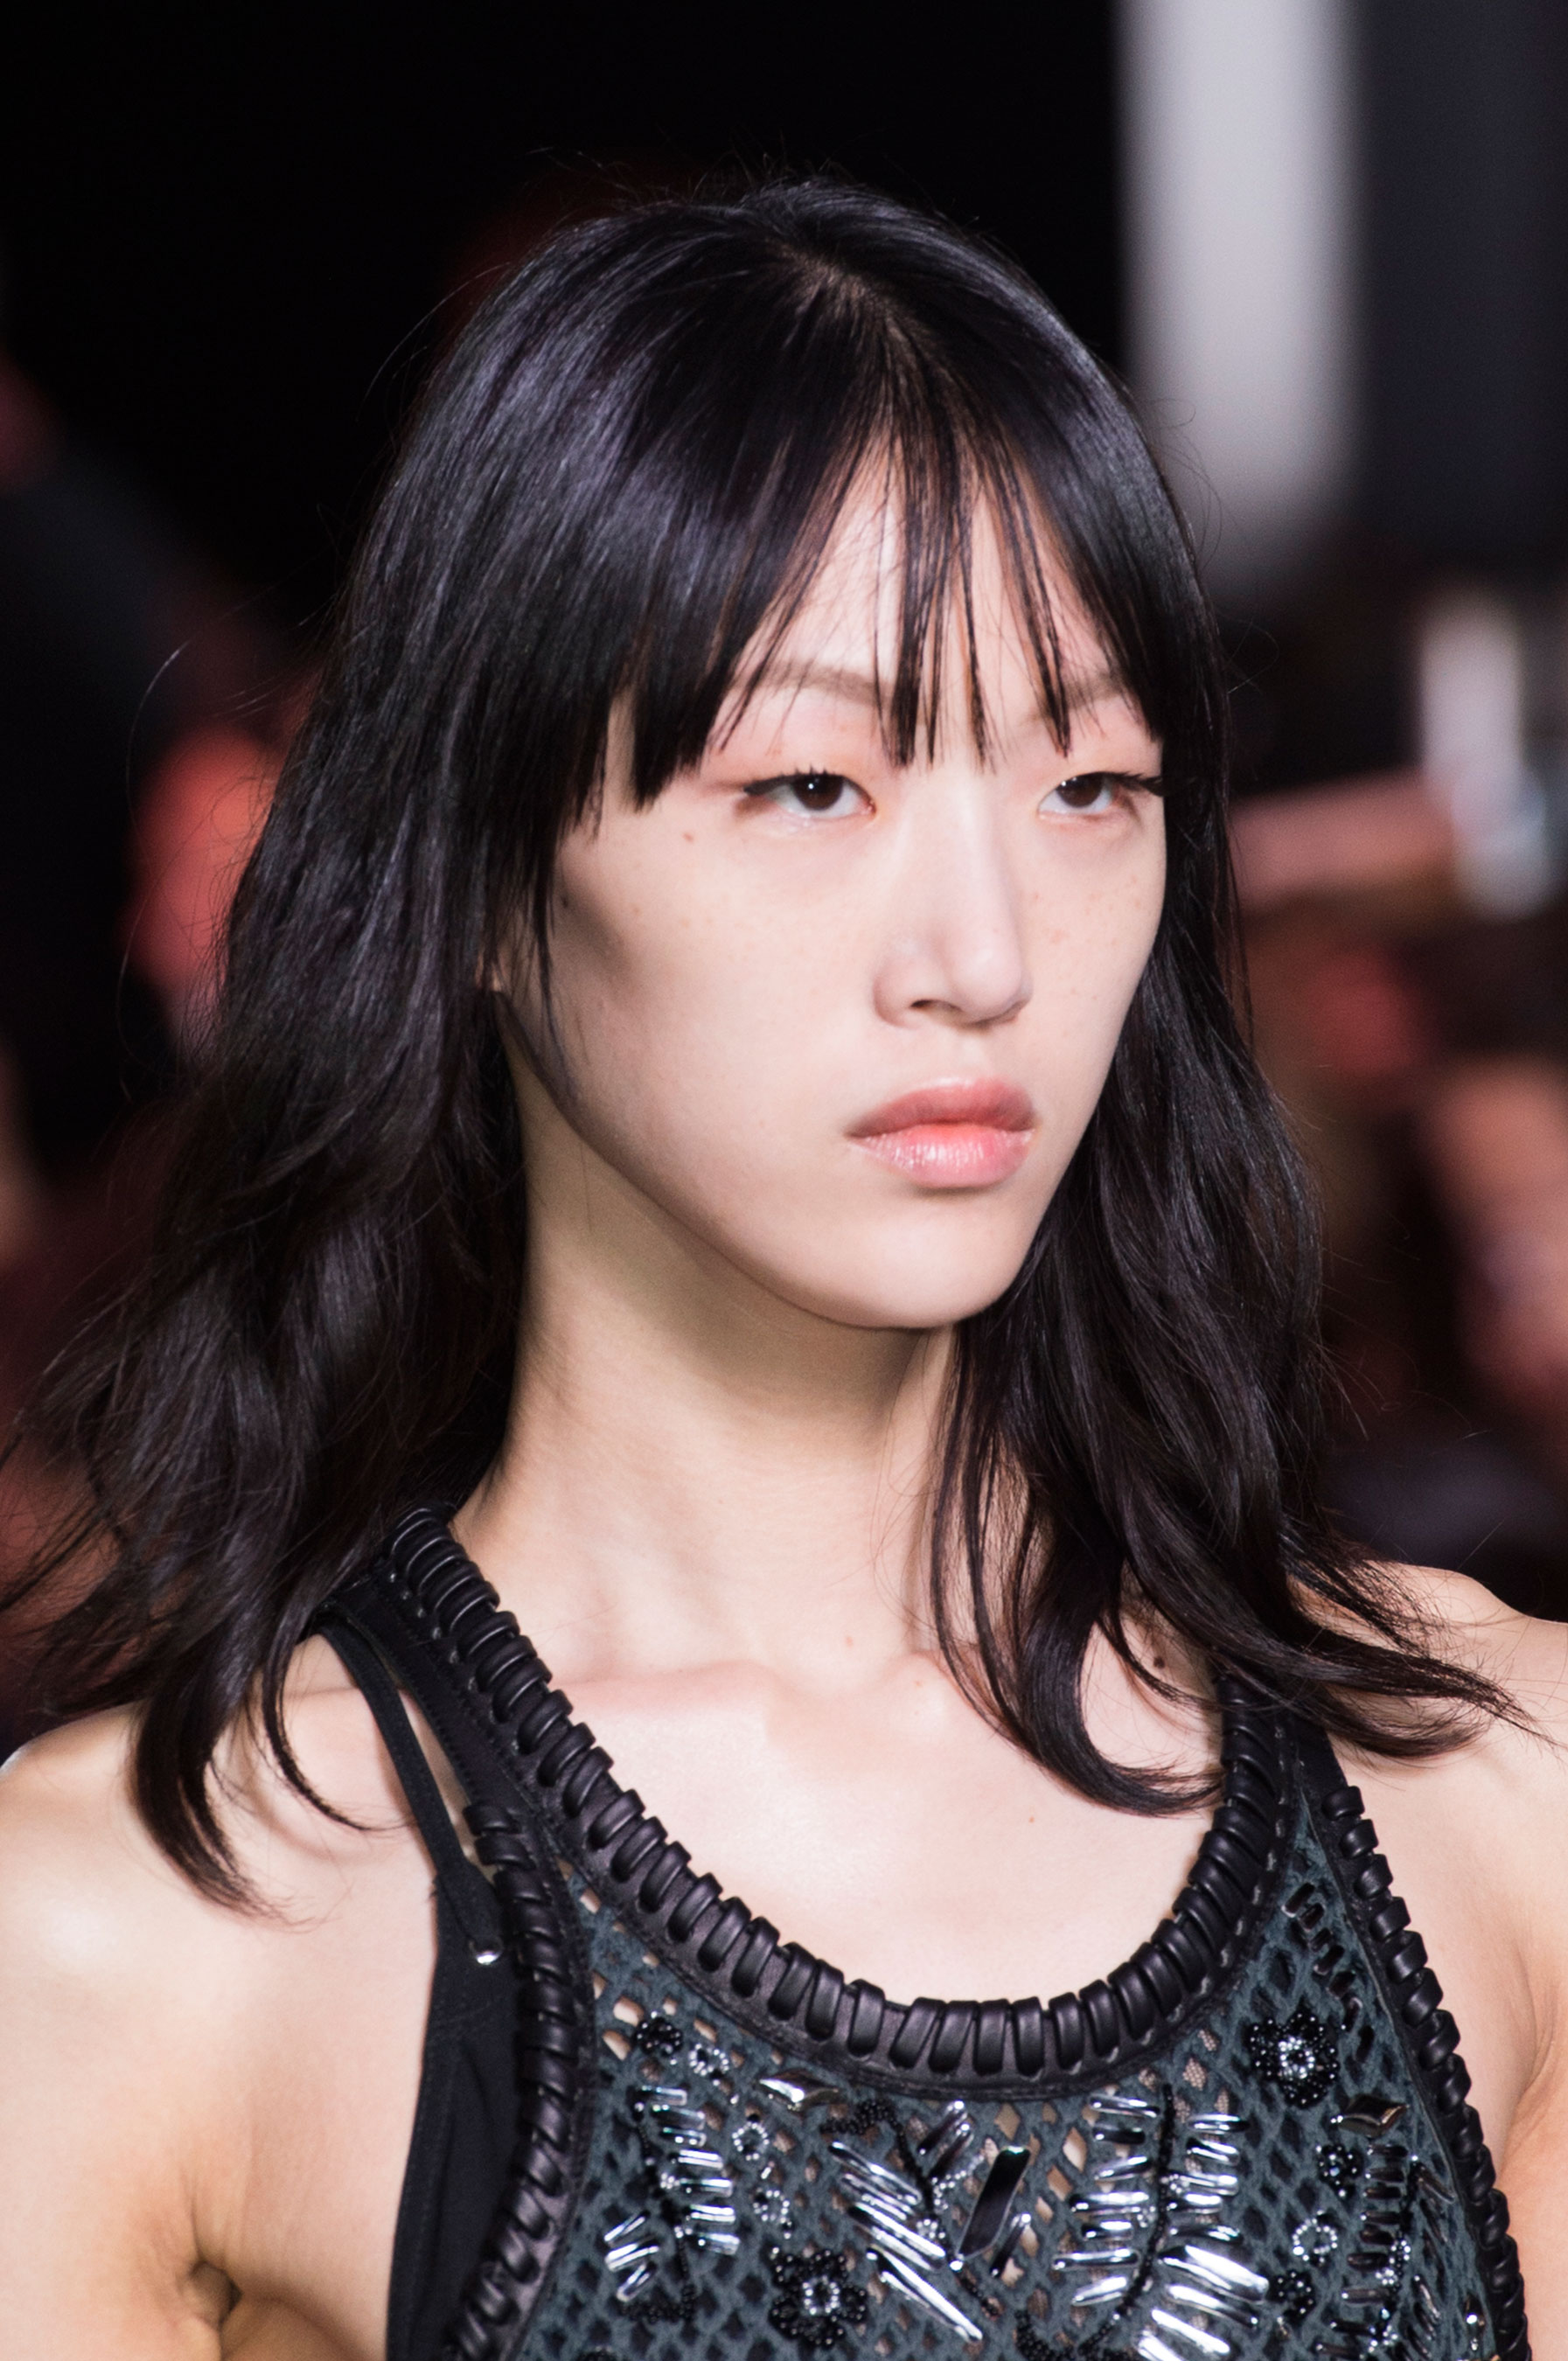 Edgy Hairstyle Ideas From Louis Vuitton Spring 2016 Show